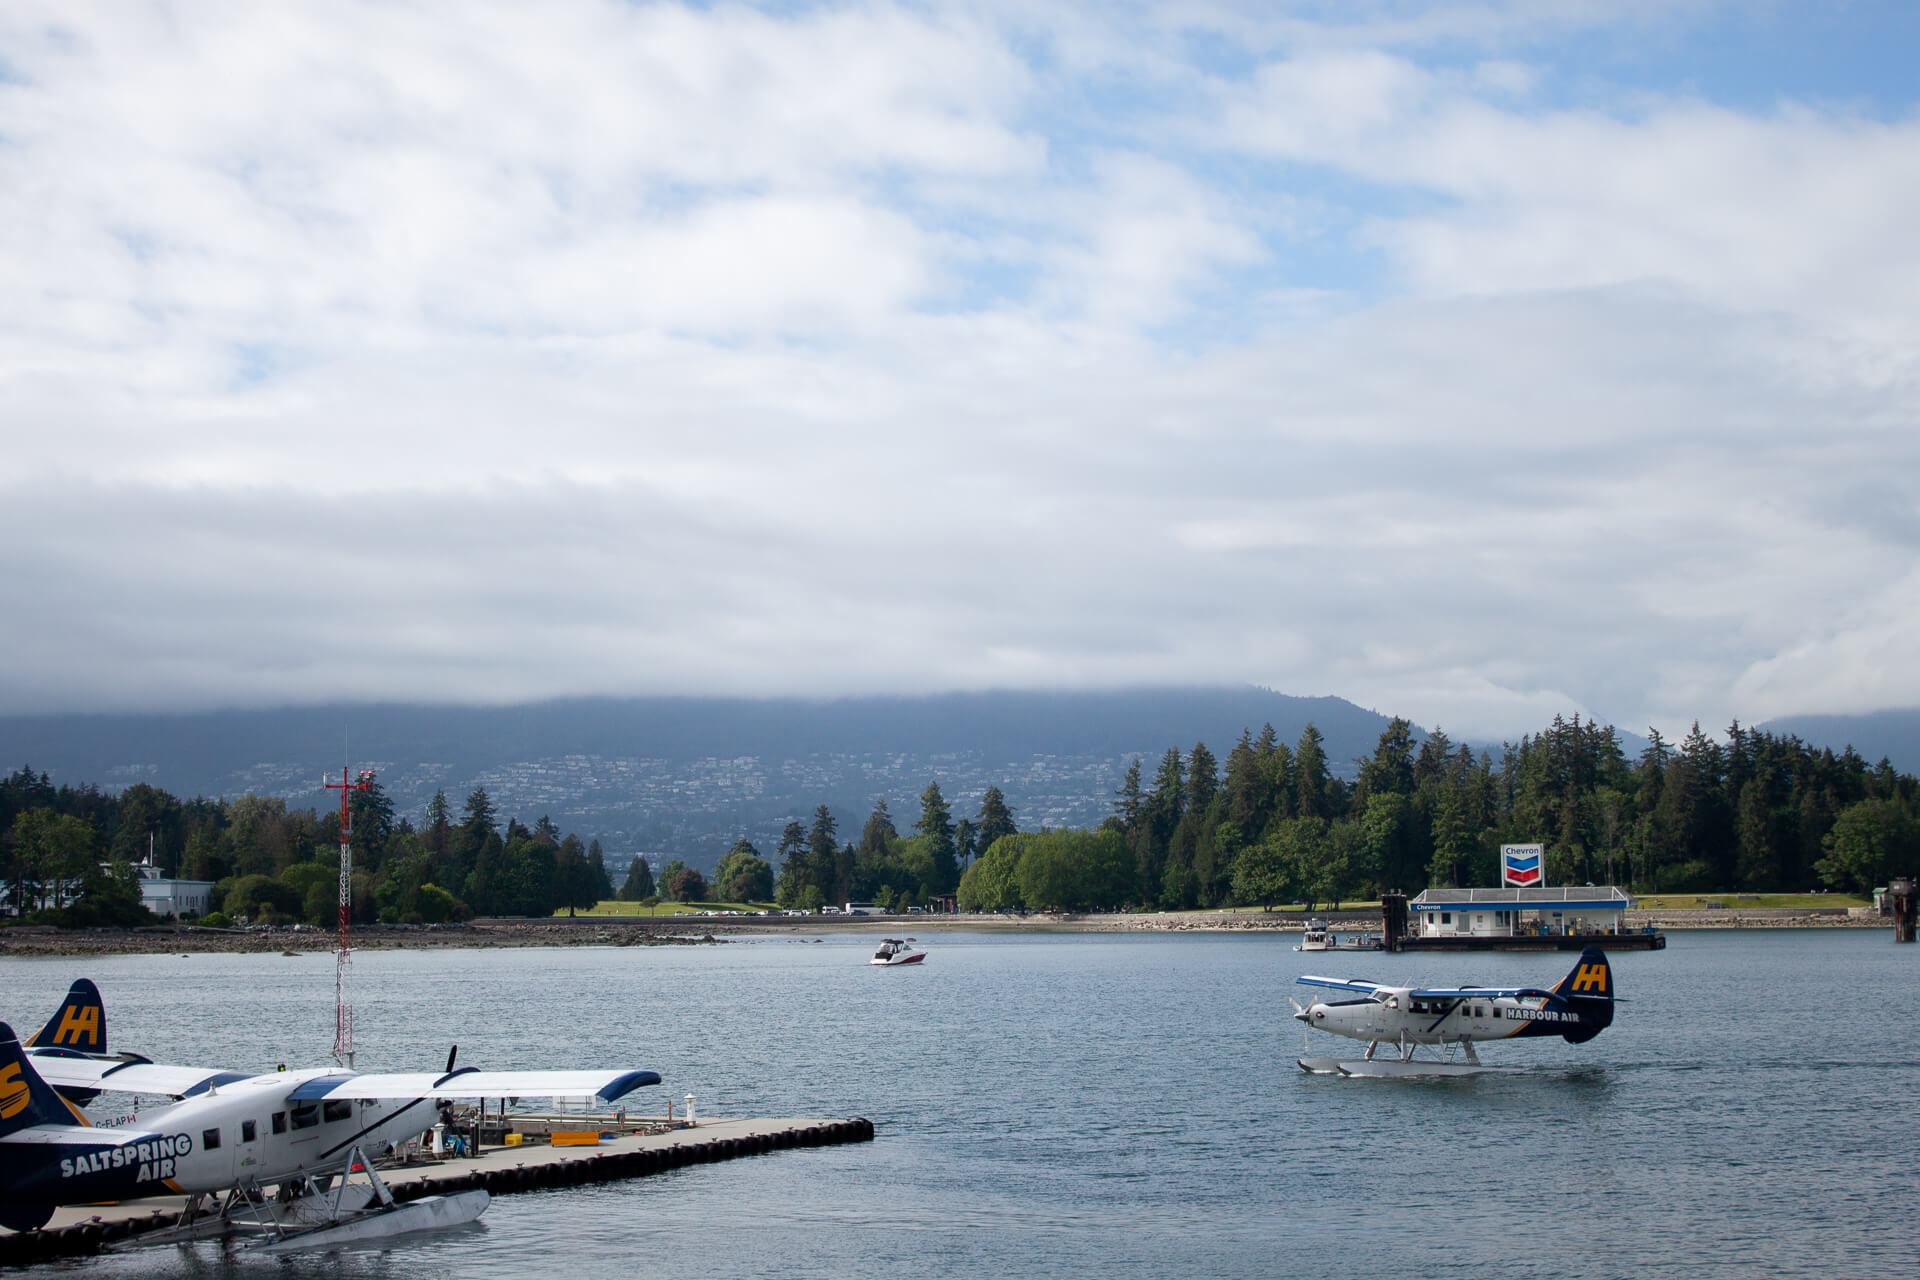 Seaplanes taking off in Coal Harbour in Vancouver.